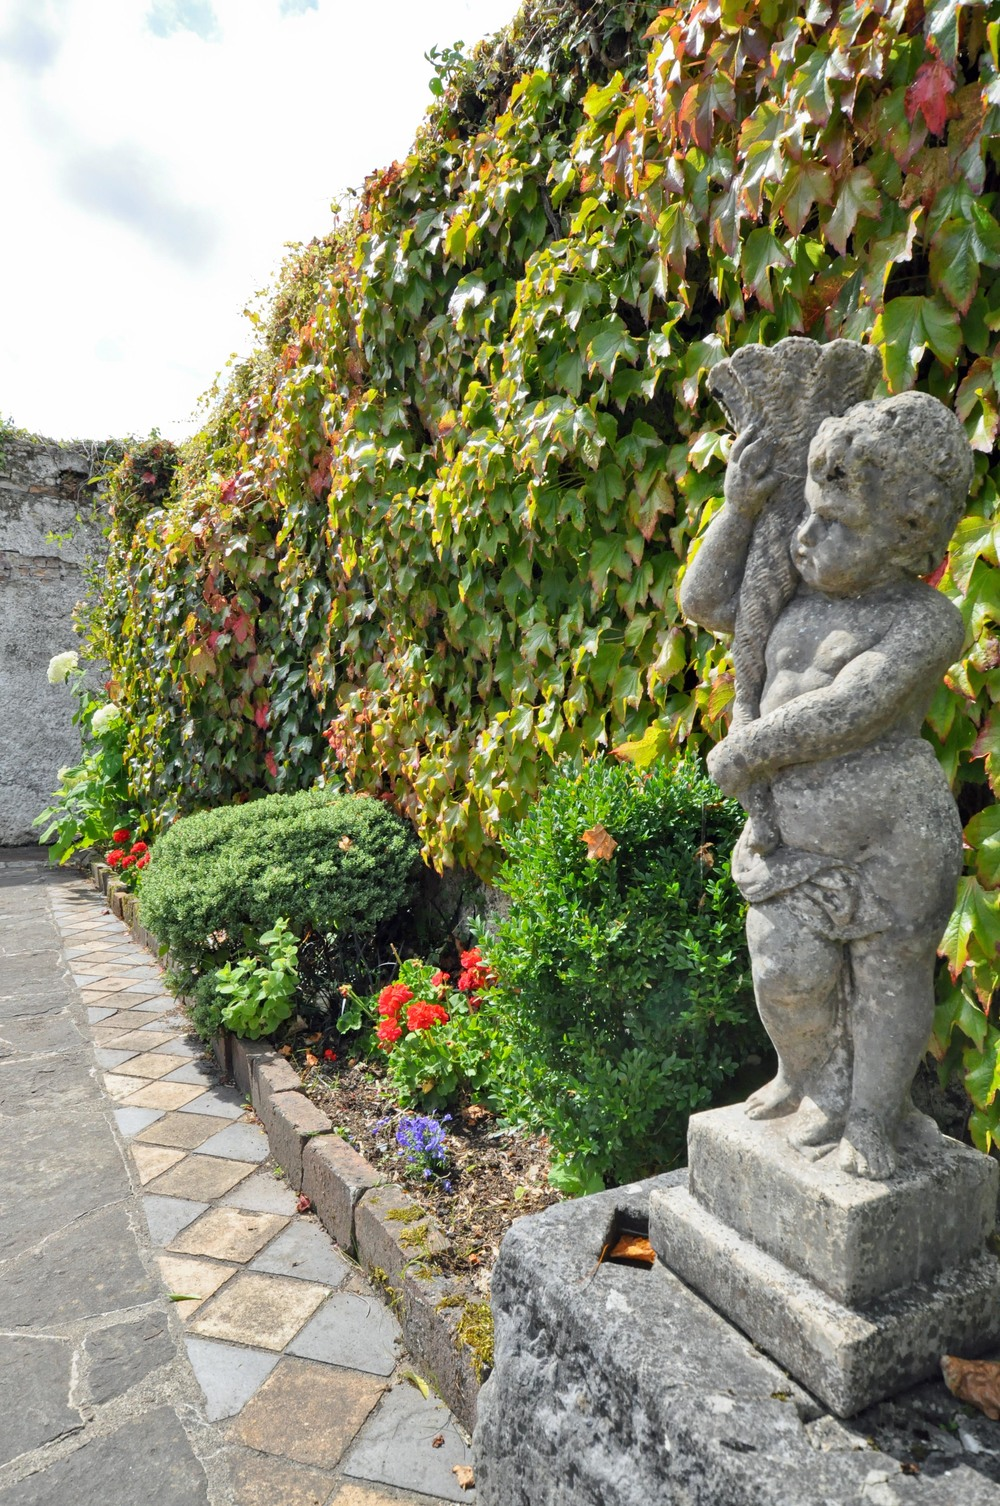 Antique figureen in the pivate outdoor eating area